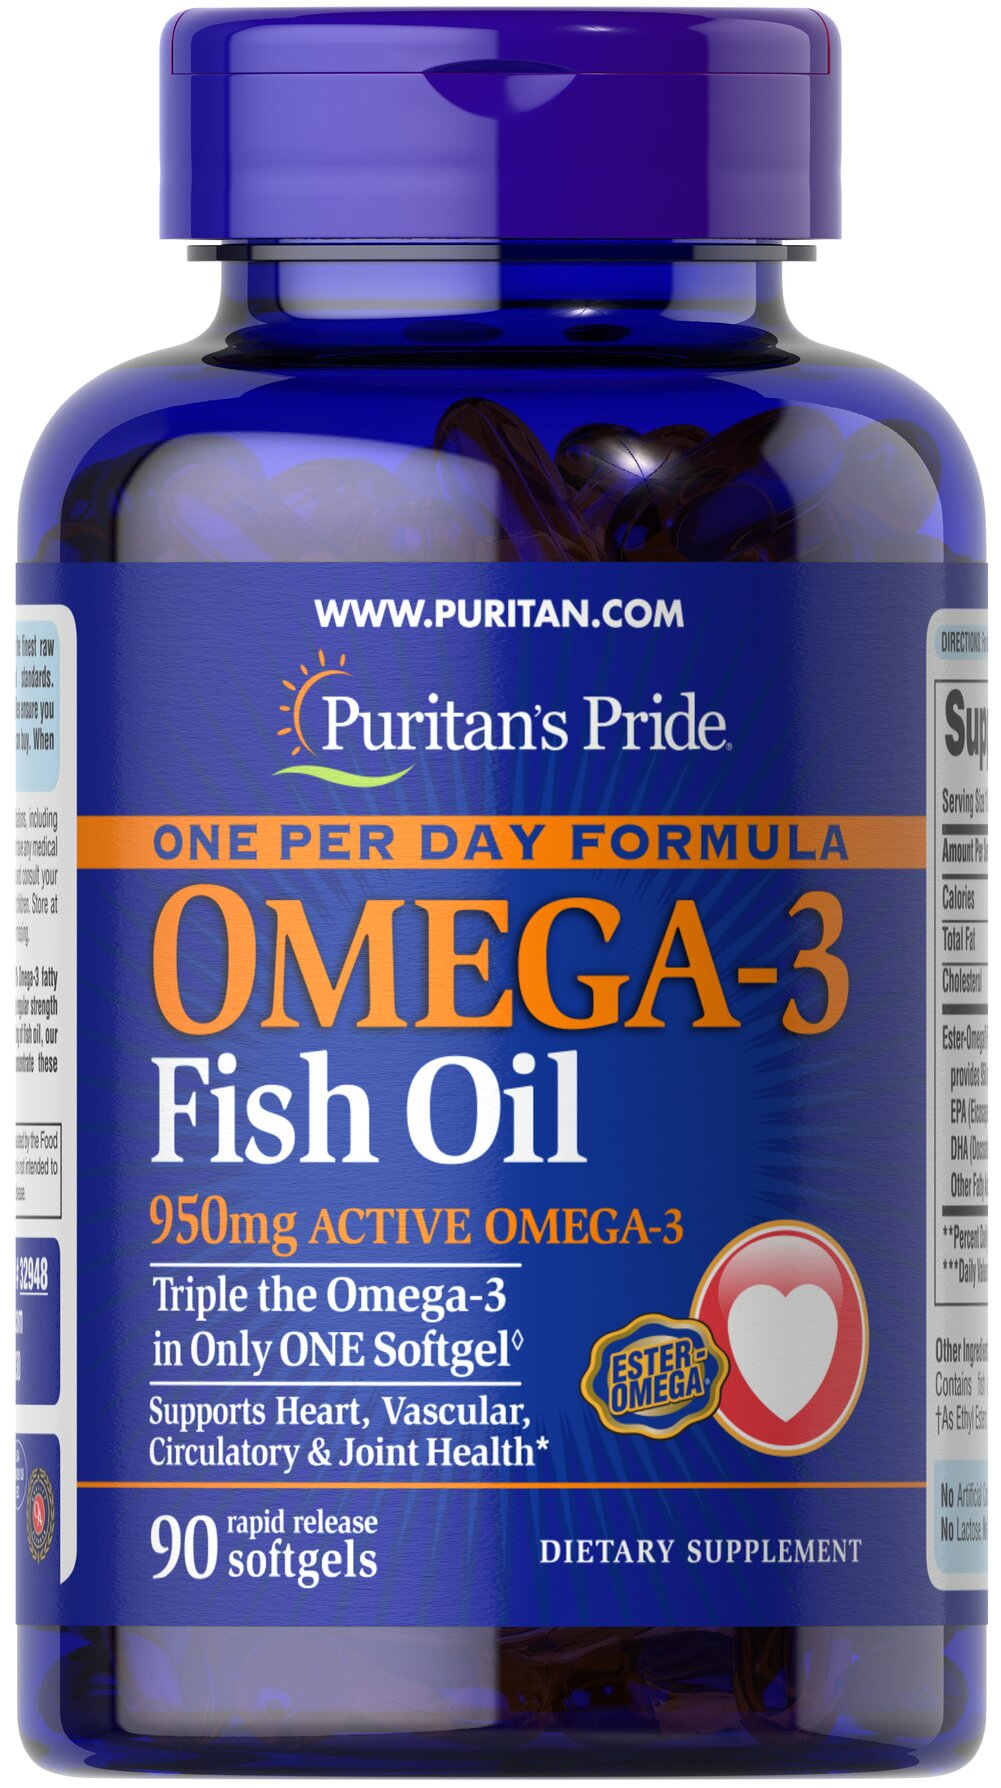 One Per Day Omega-3 Fish Oil 1360 mg (950 mg Active Omega-3)  90 Softgels 950 mg $29.99